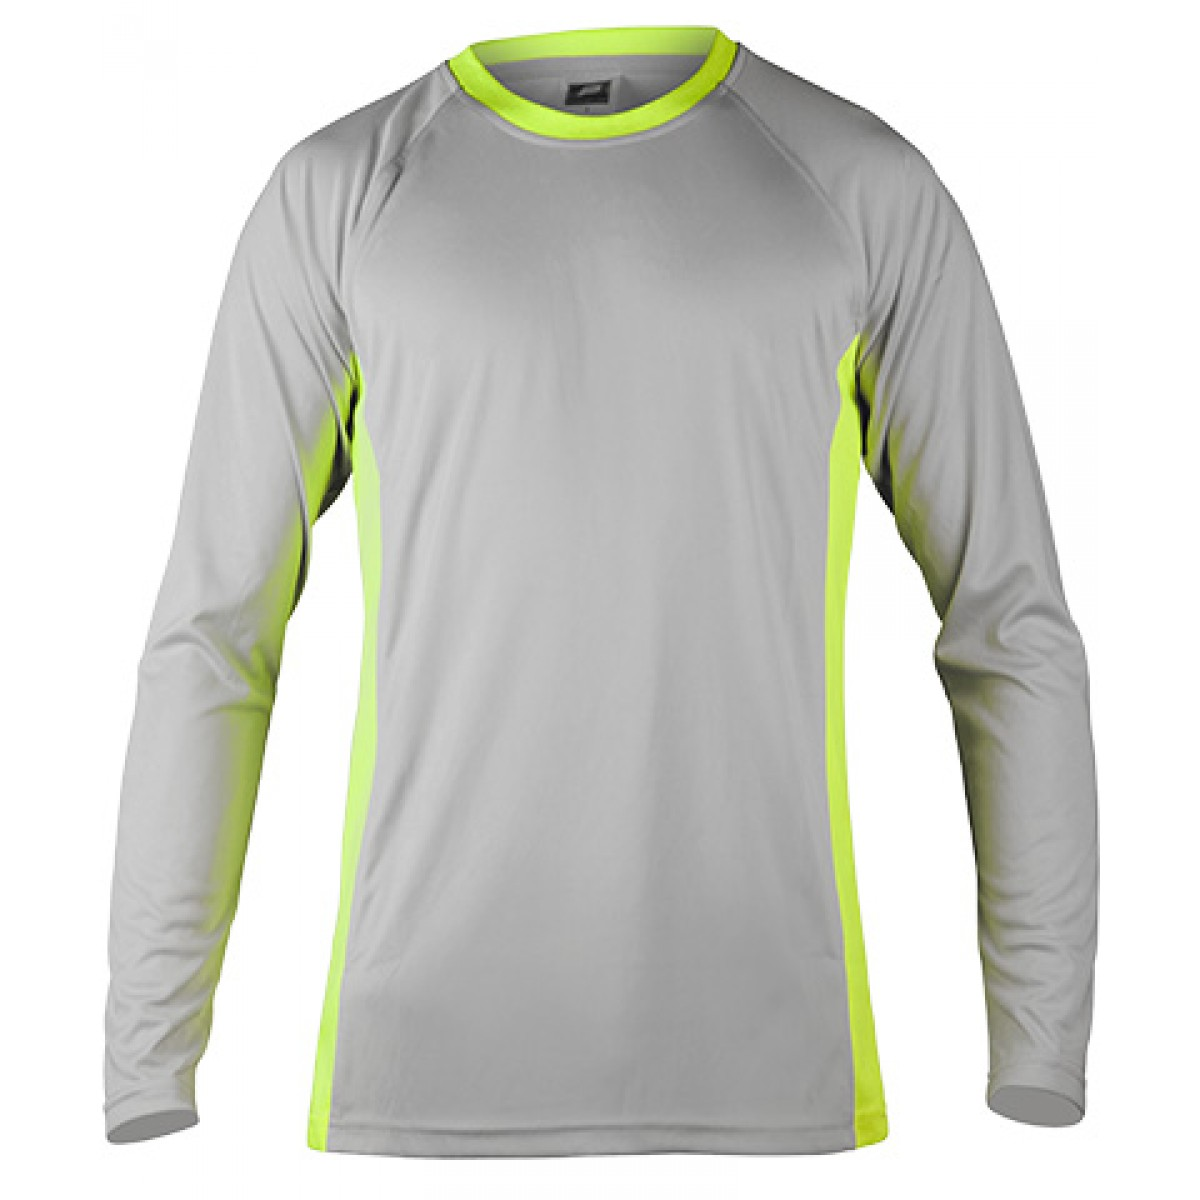 Long Sleeve Performance With Side Insert